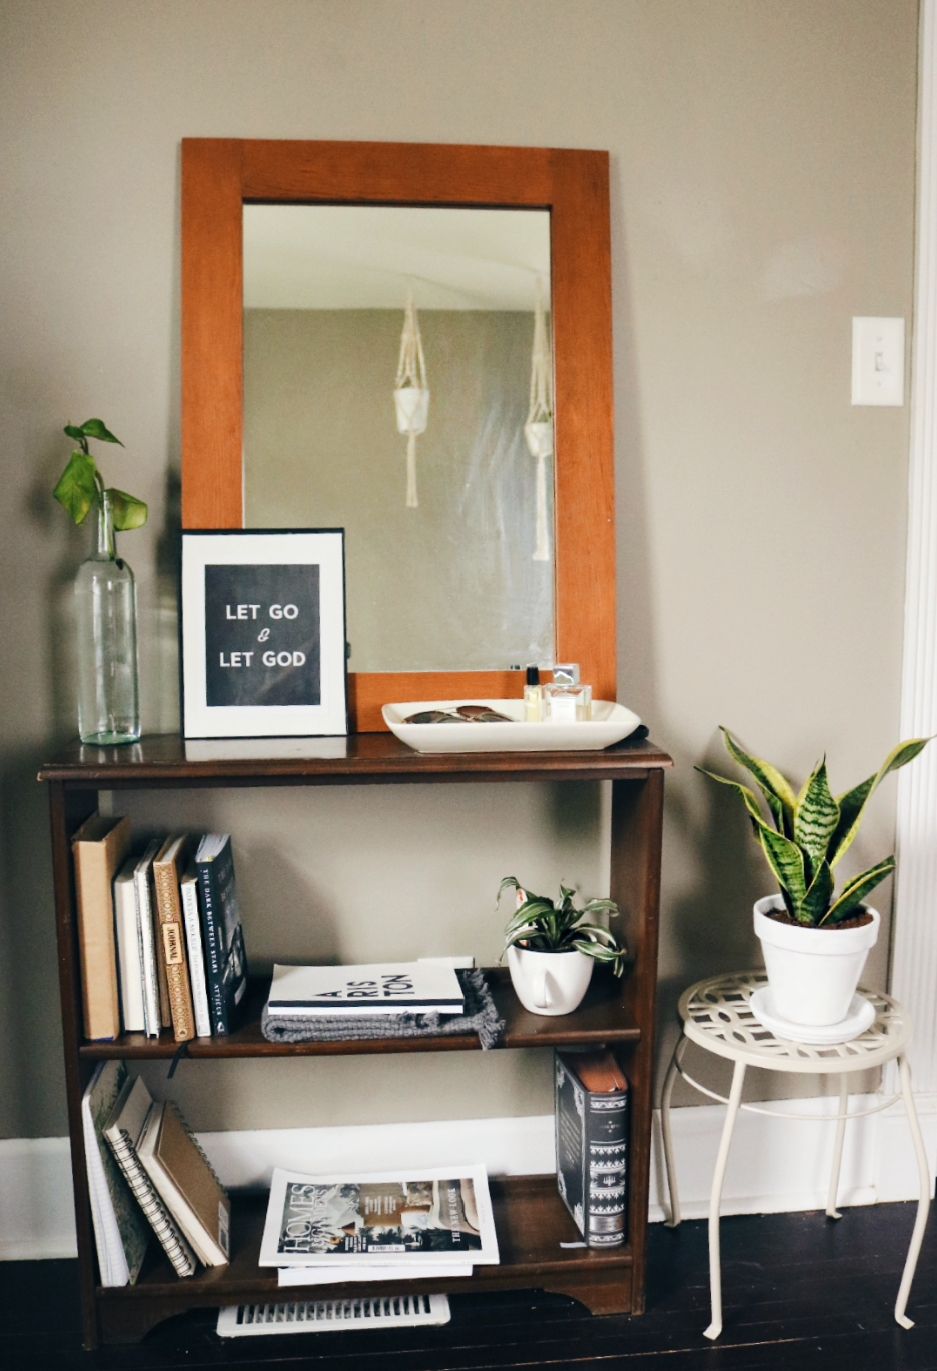 This vignette was inspired by a combination of ideas I gleaned from Pinterest.